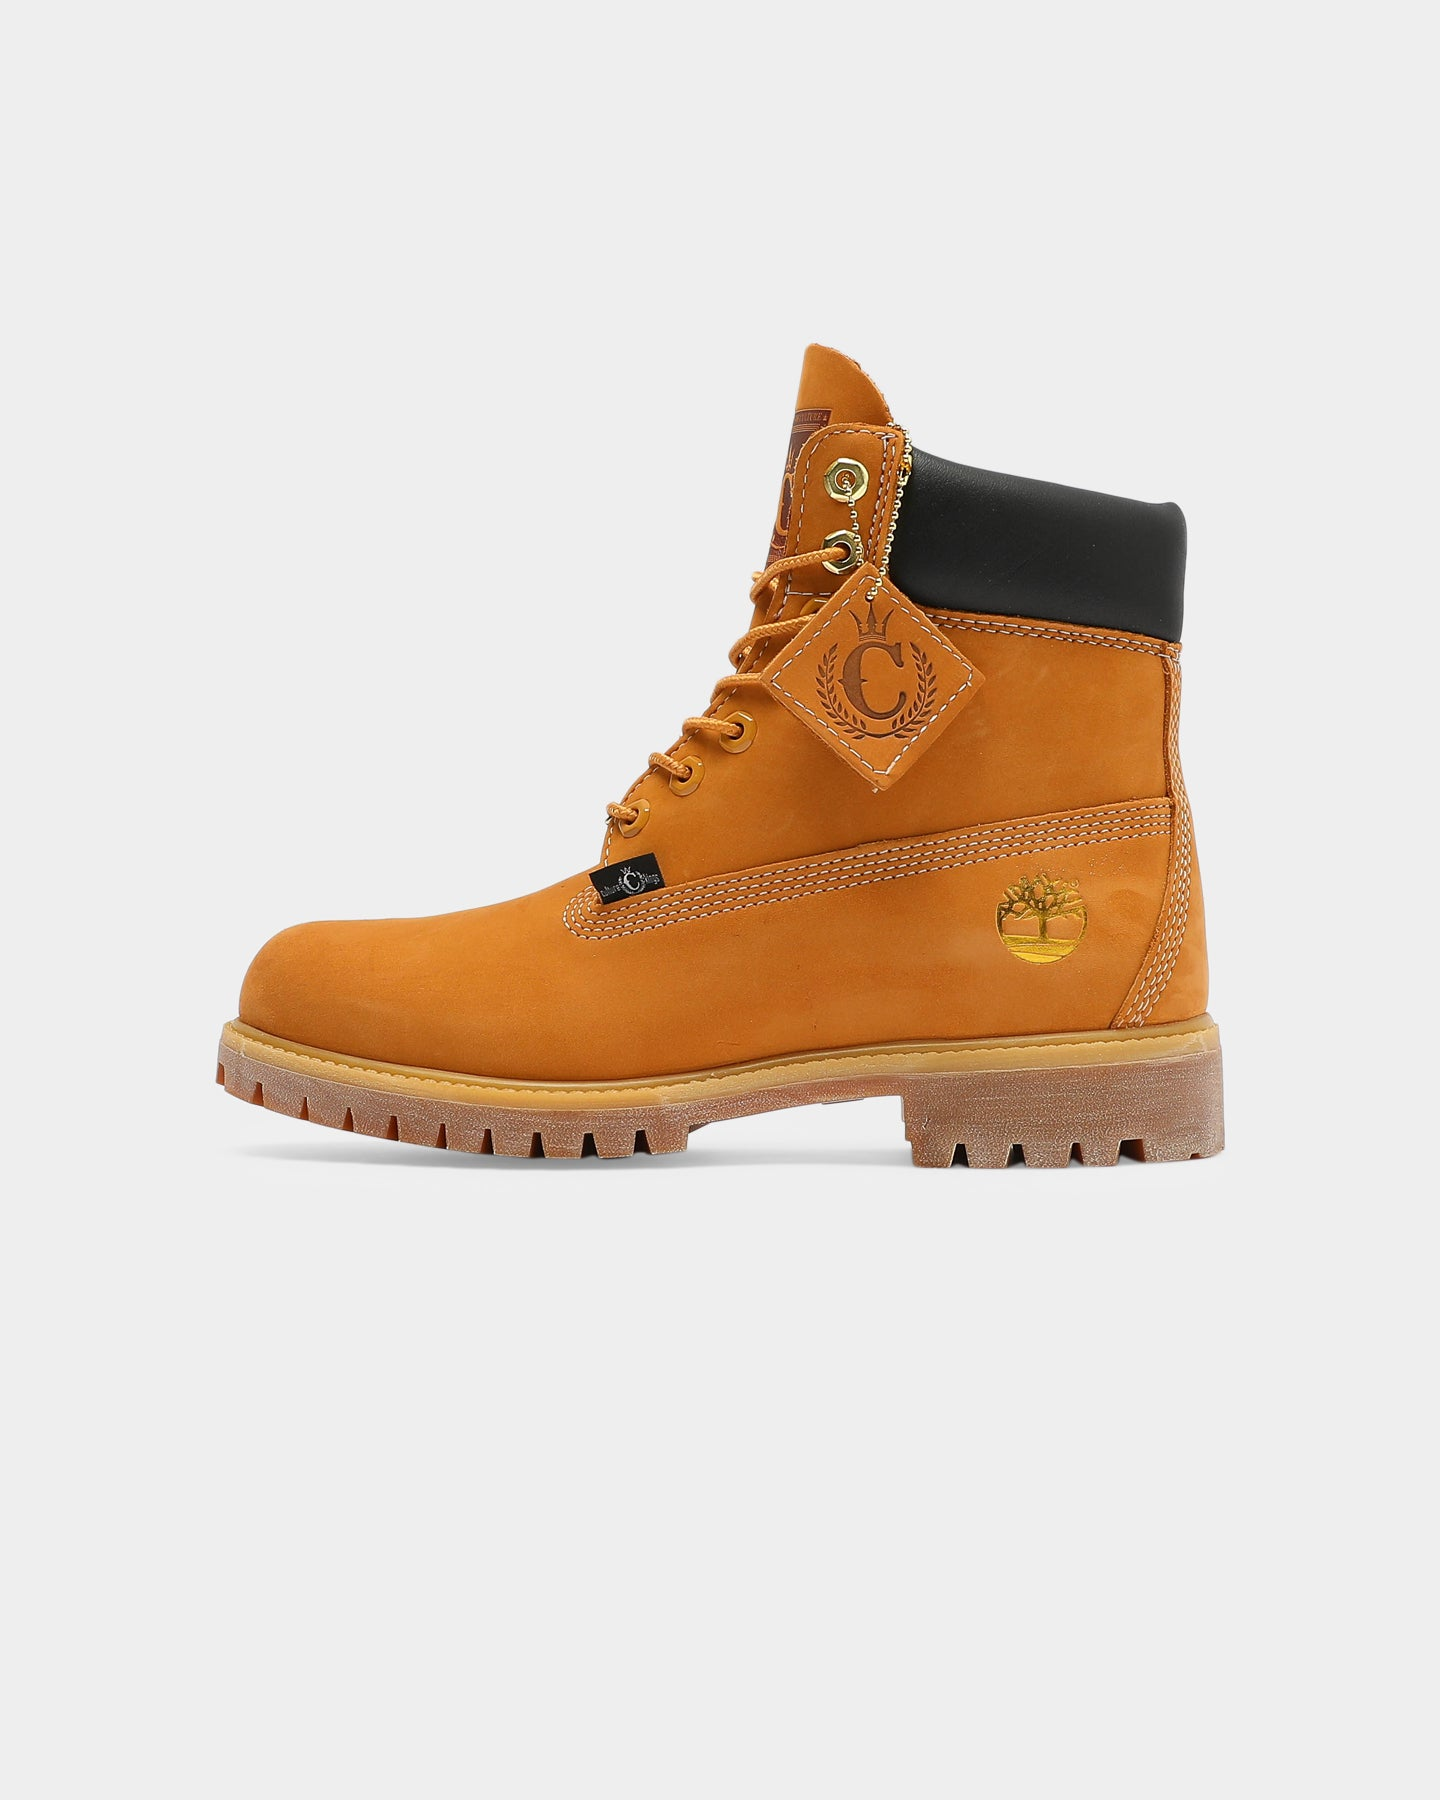 Culture Kings X Timberland 6 Inch Boot Wheat